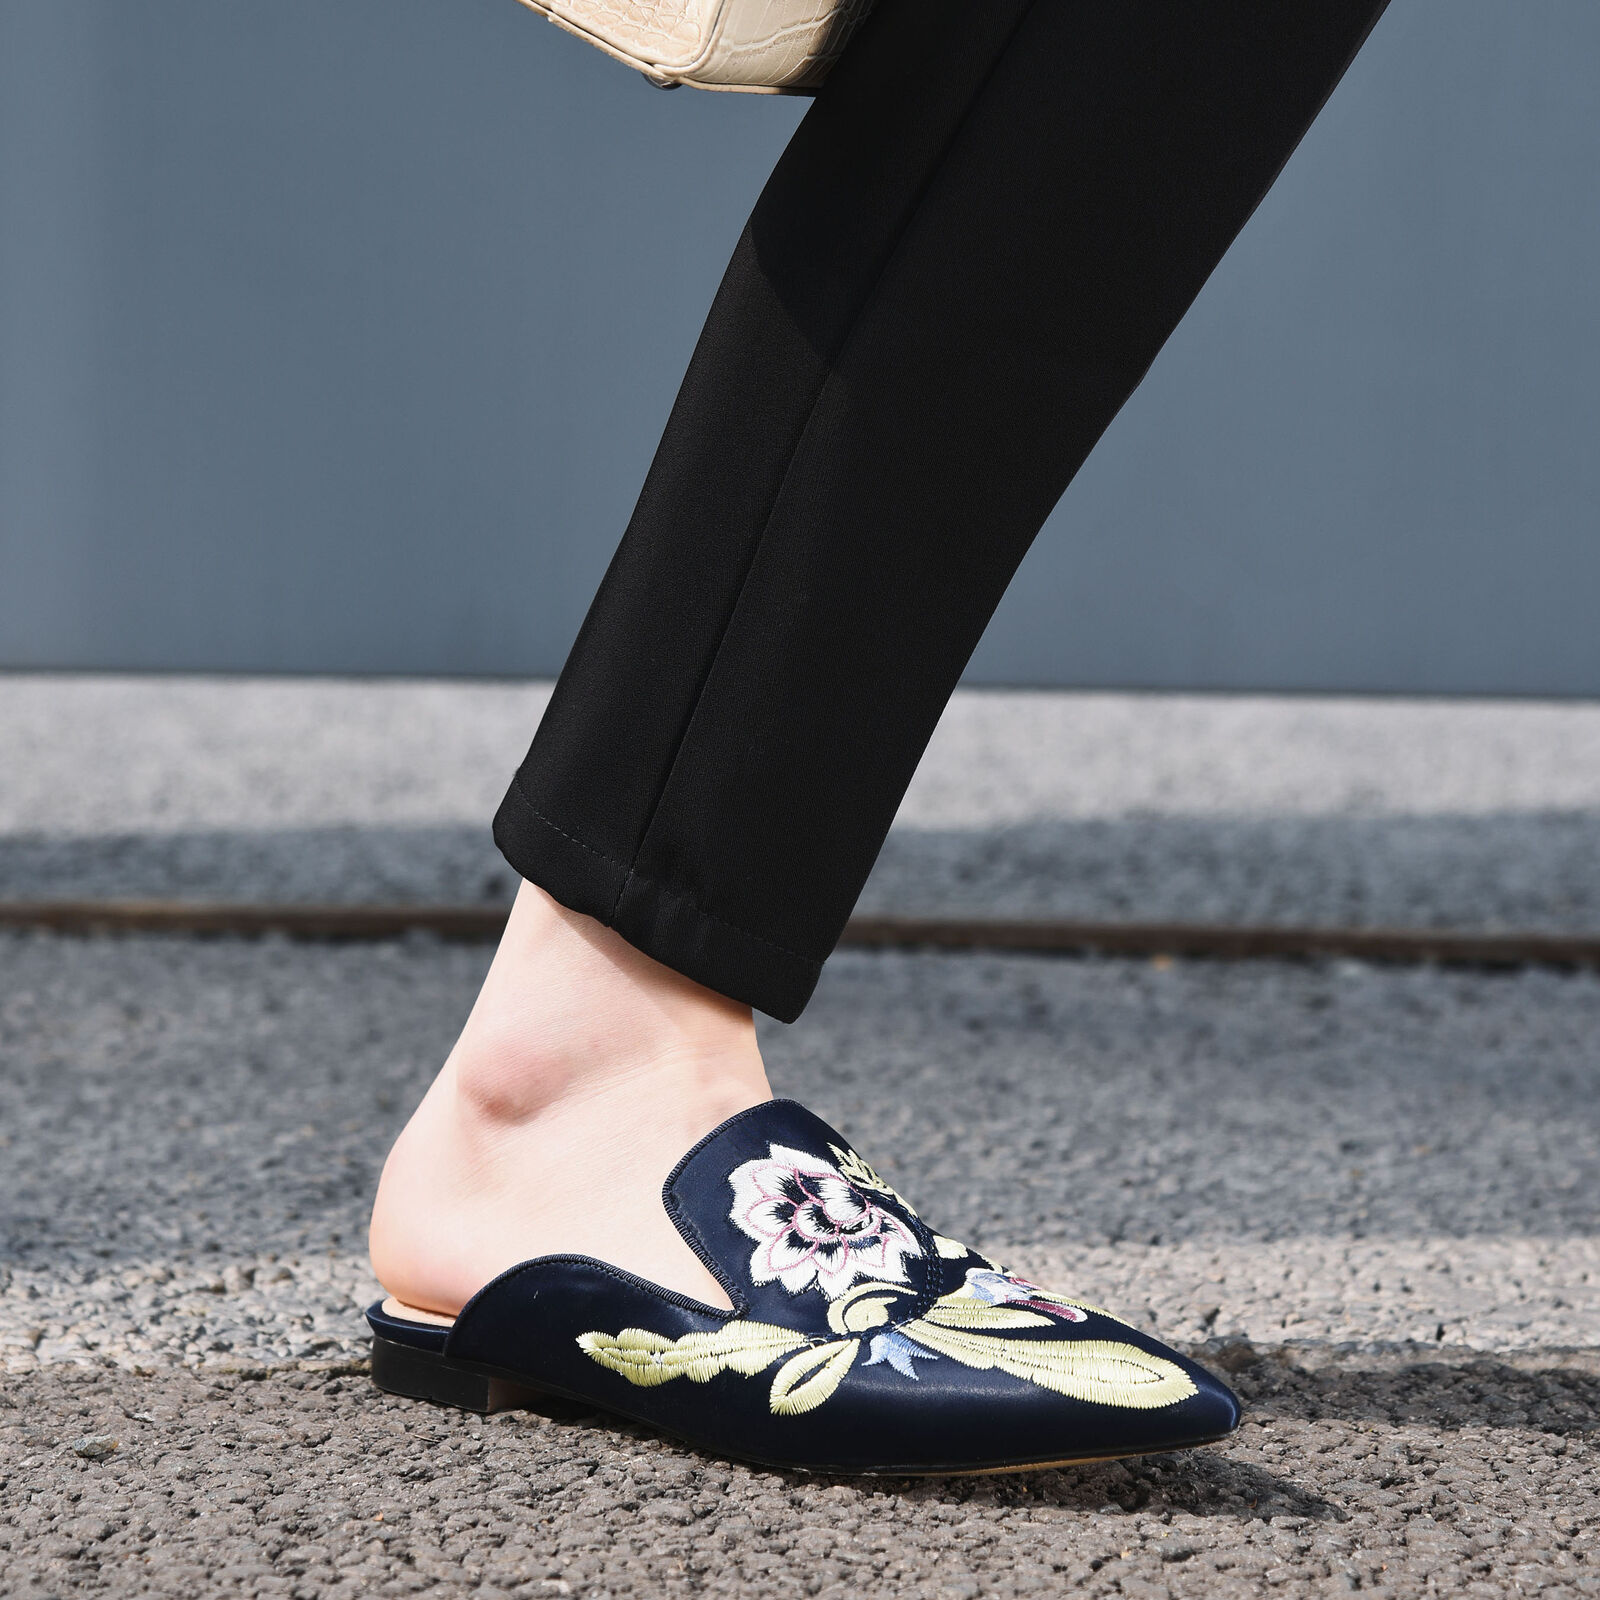 Fashion Mules Chaussures Lady's Pointed Flats Mocassins broderie fleurs Chaussures 2019